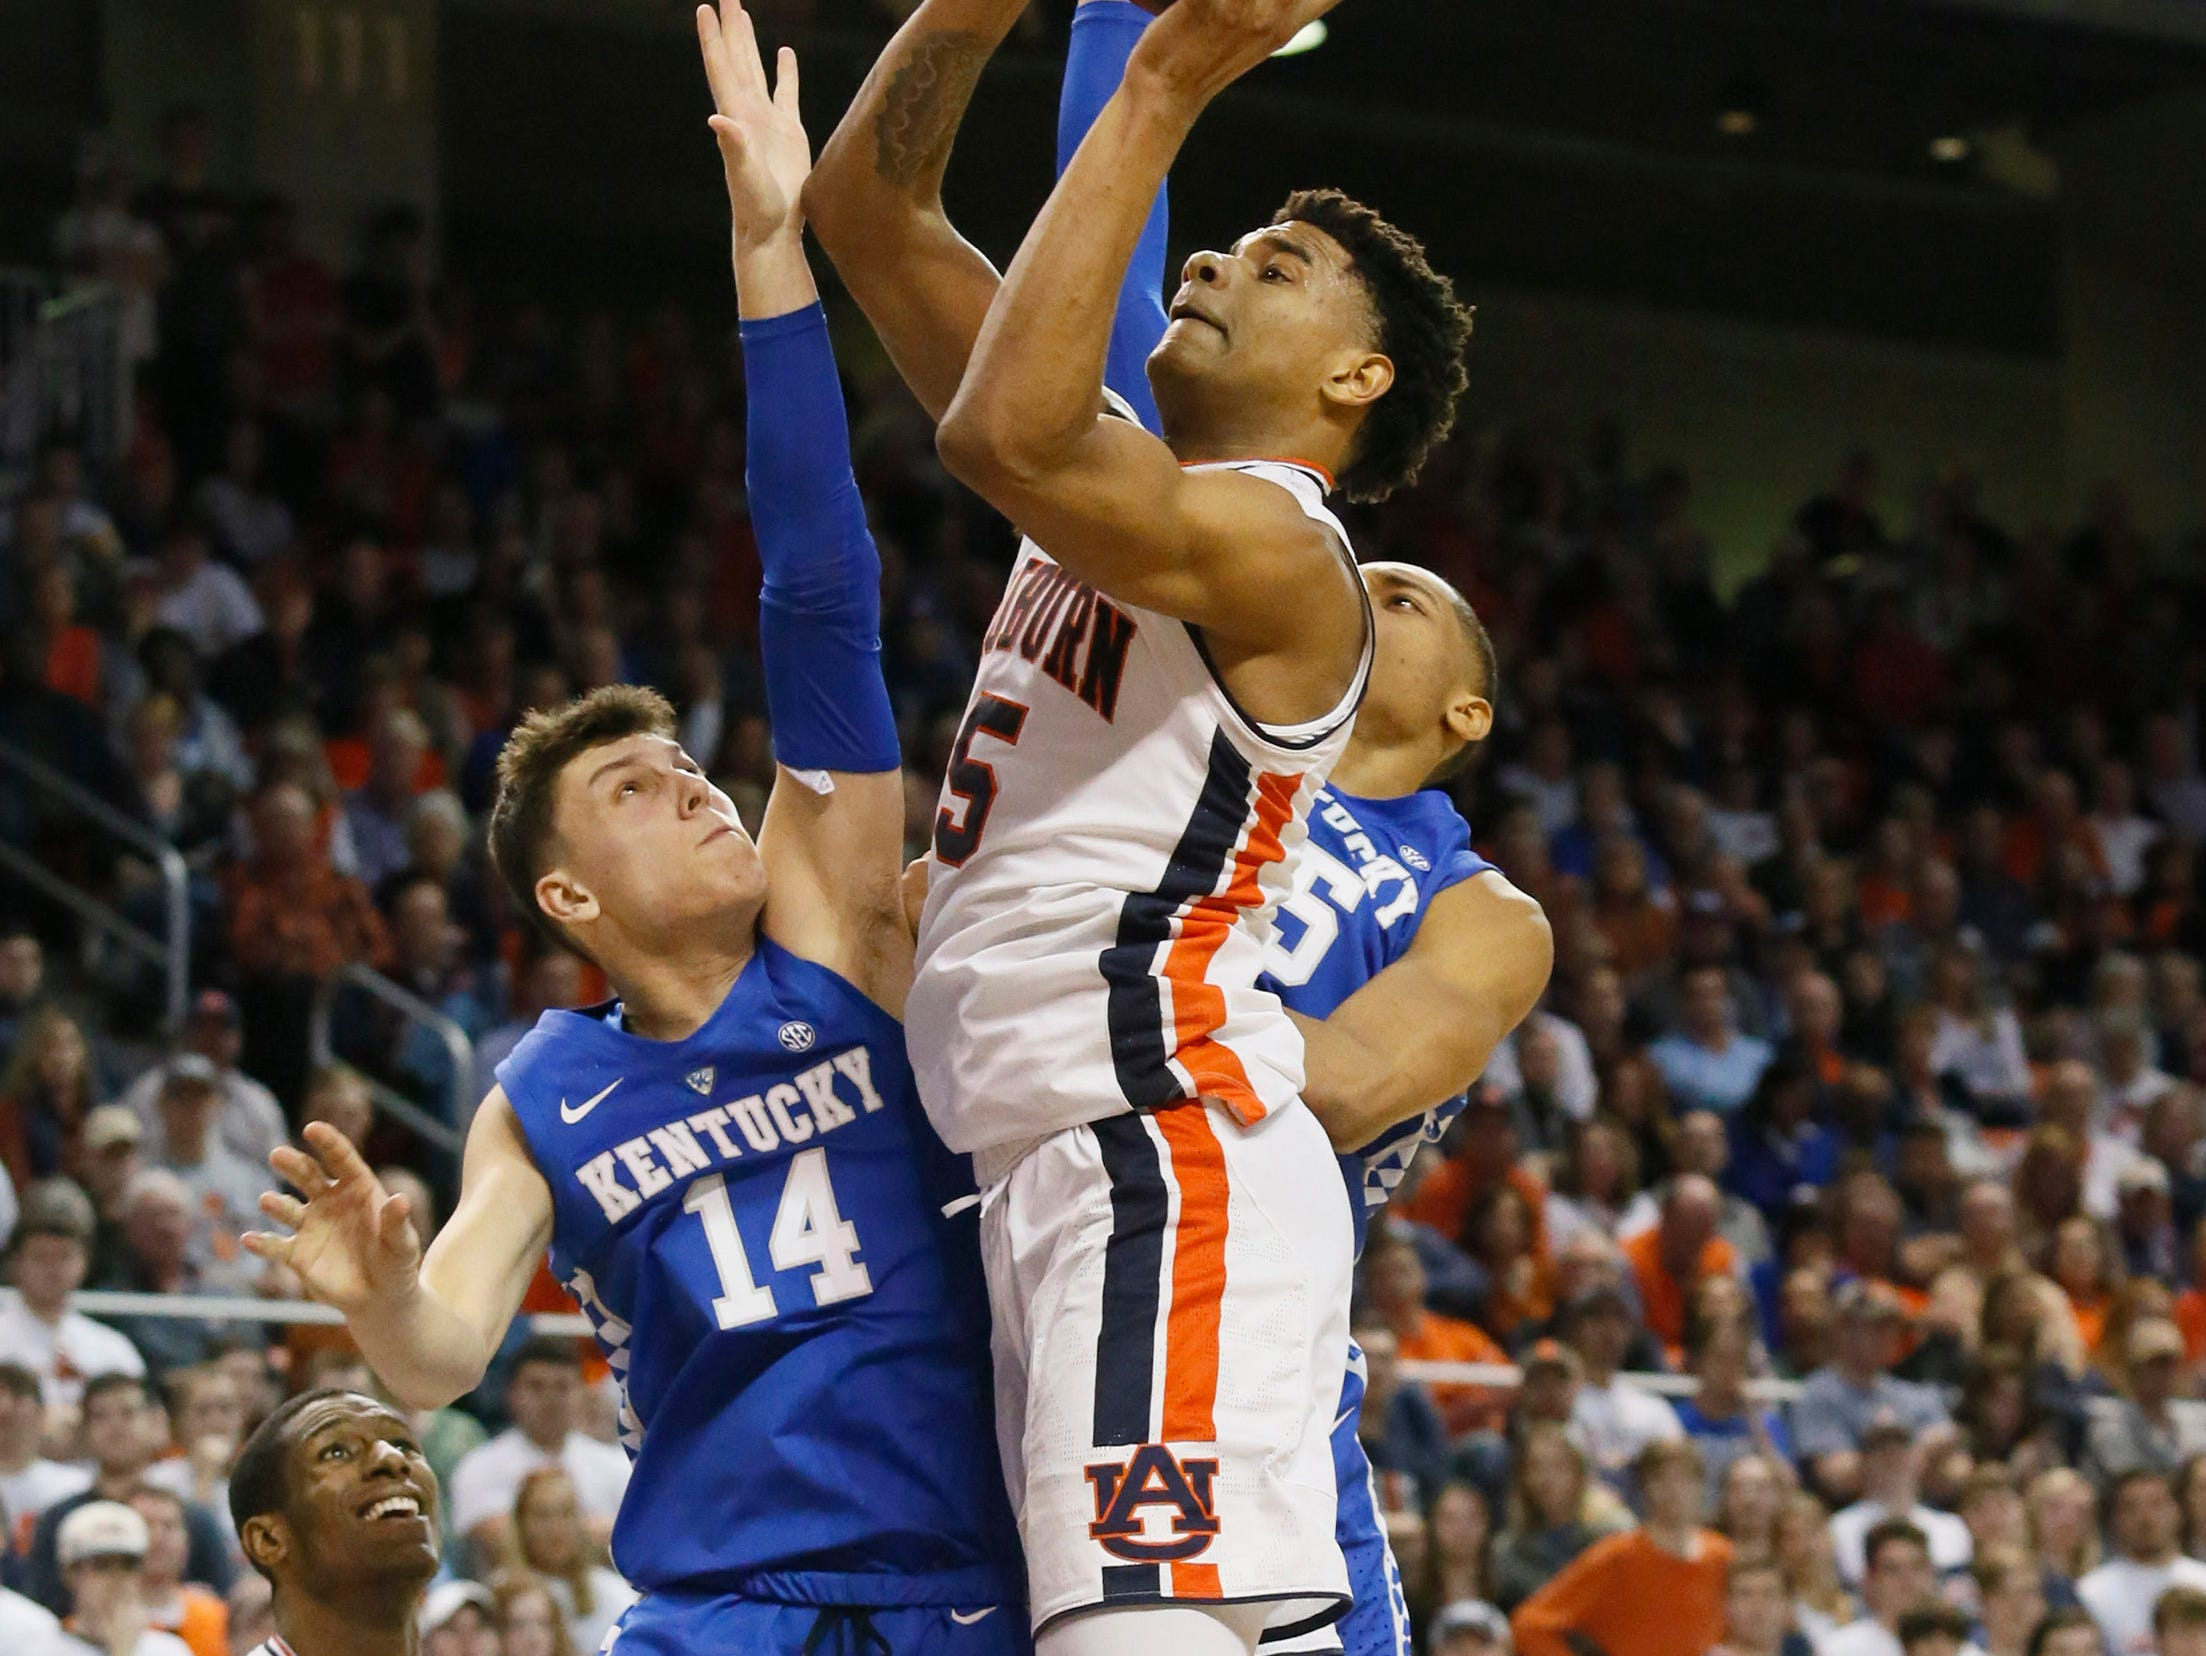 Jan 19, 2019; Auburn, AL, USA;  Kentucky Wildcats guard Tyler Herrd (14) tries to block Auburn Tigers forward Chuma Okeke (5) during the second half at Auburn Arena. Mandatory Credit: John Reed-USA TODAY Sports